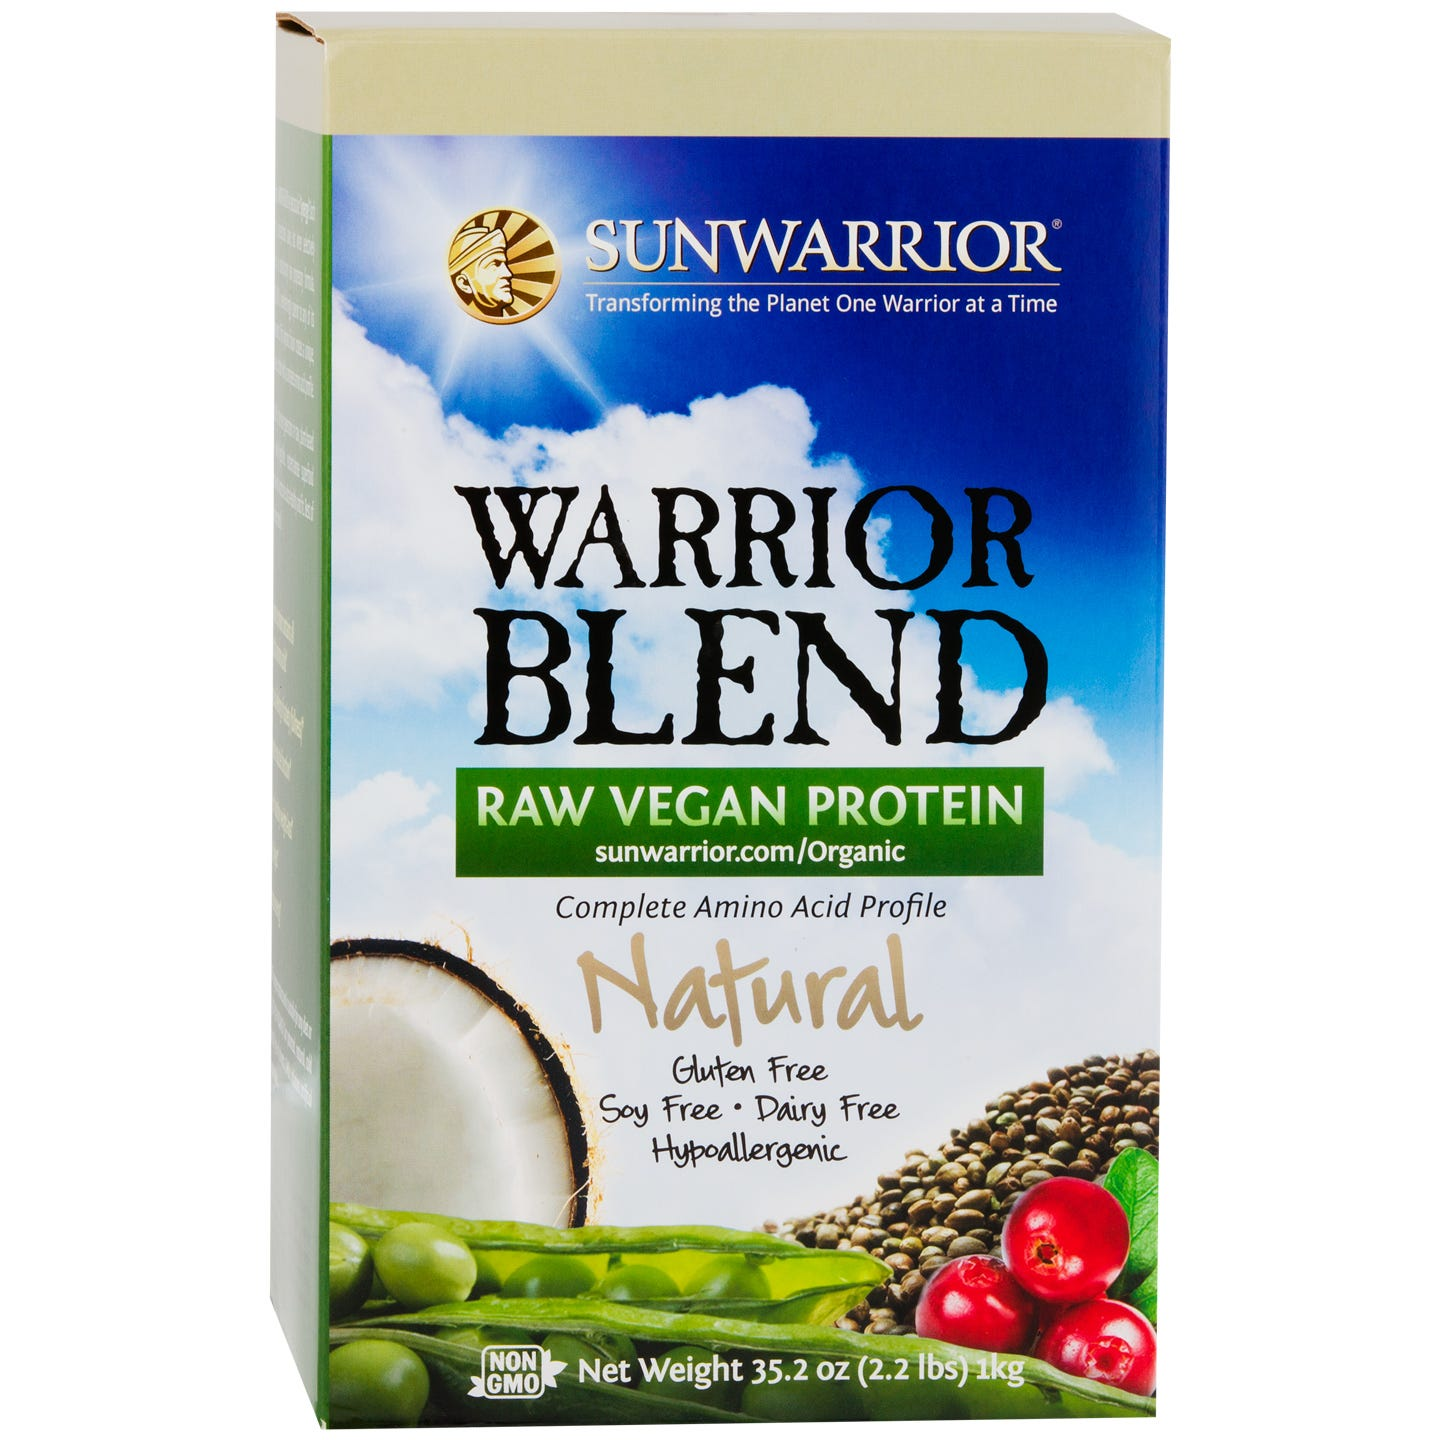 Warrior Blend Protein Natural 2.2lb, Sunwarrior - Rapid Diet Weight Loss Products Shop